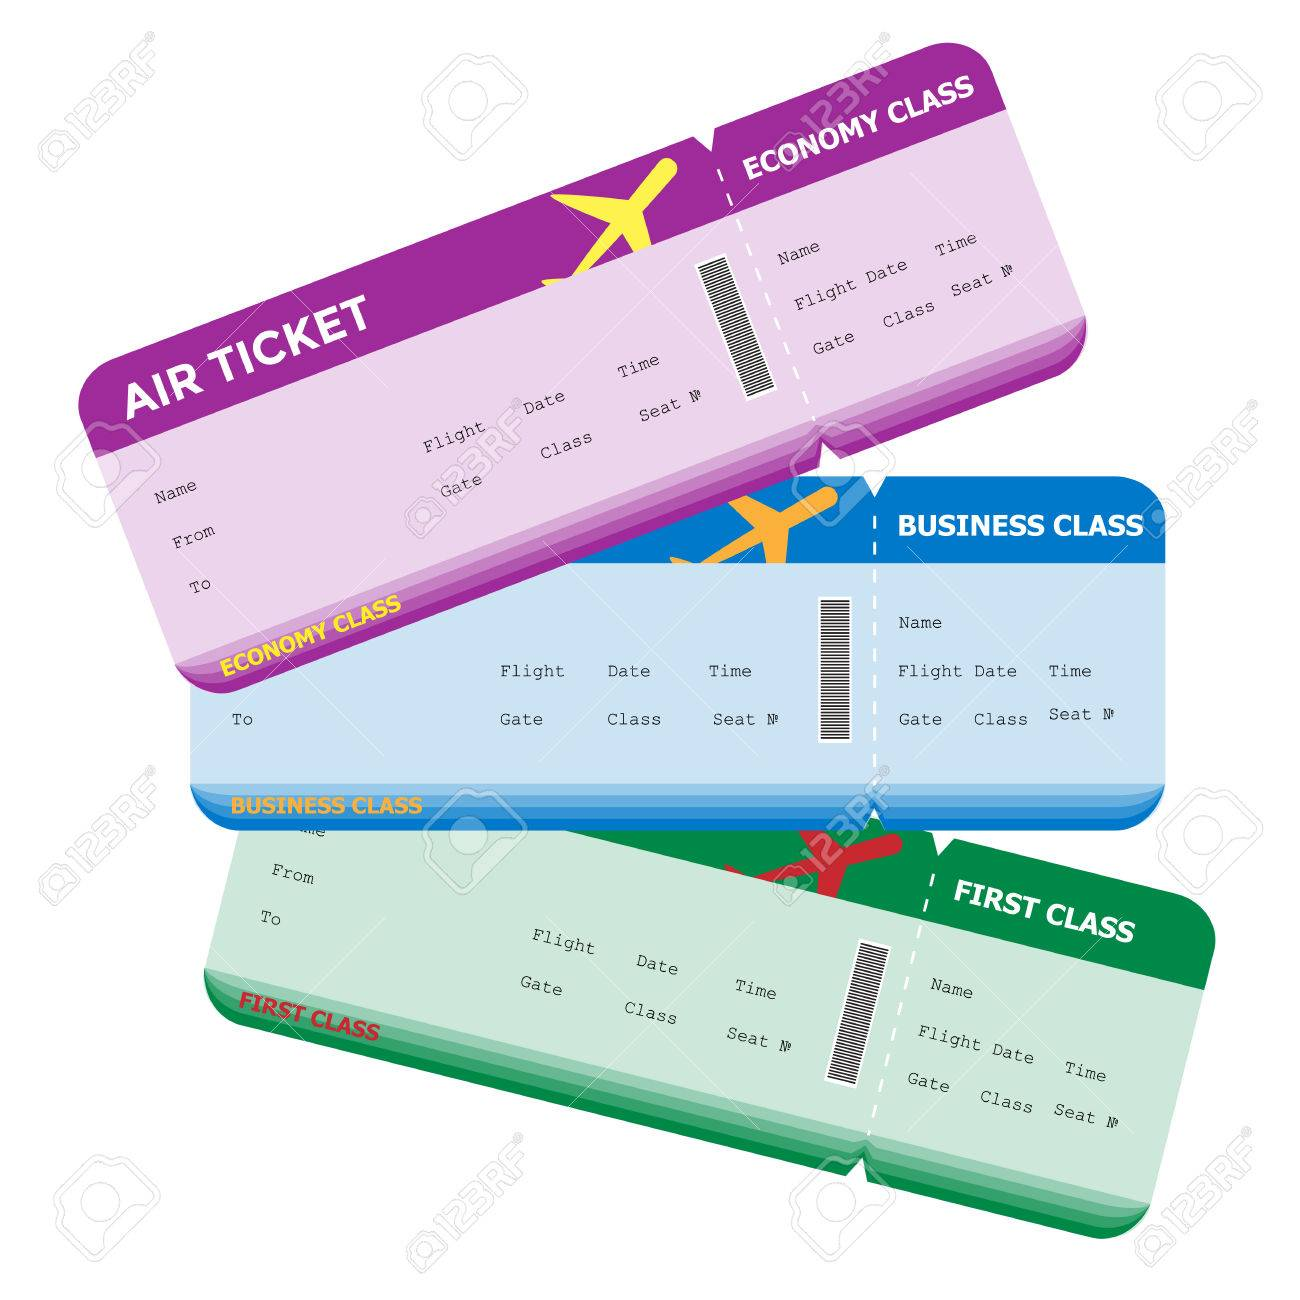 Three Classes of Blank Flight Boarding Pass Different Colors.